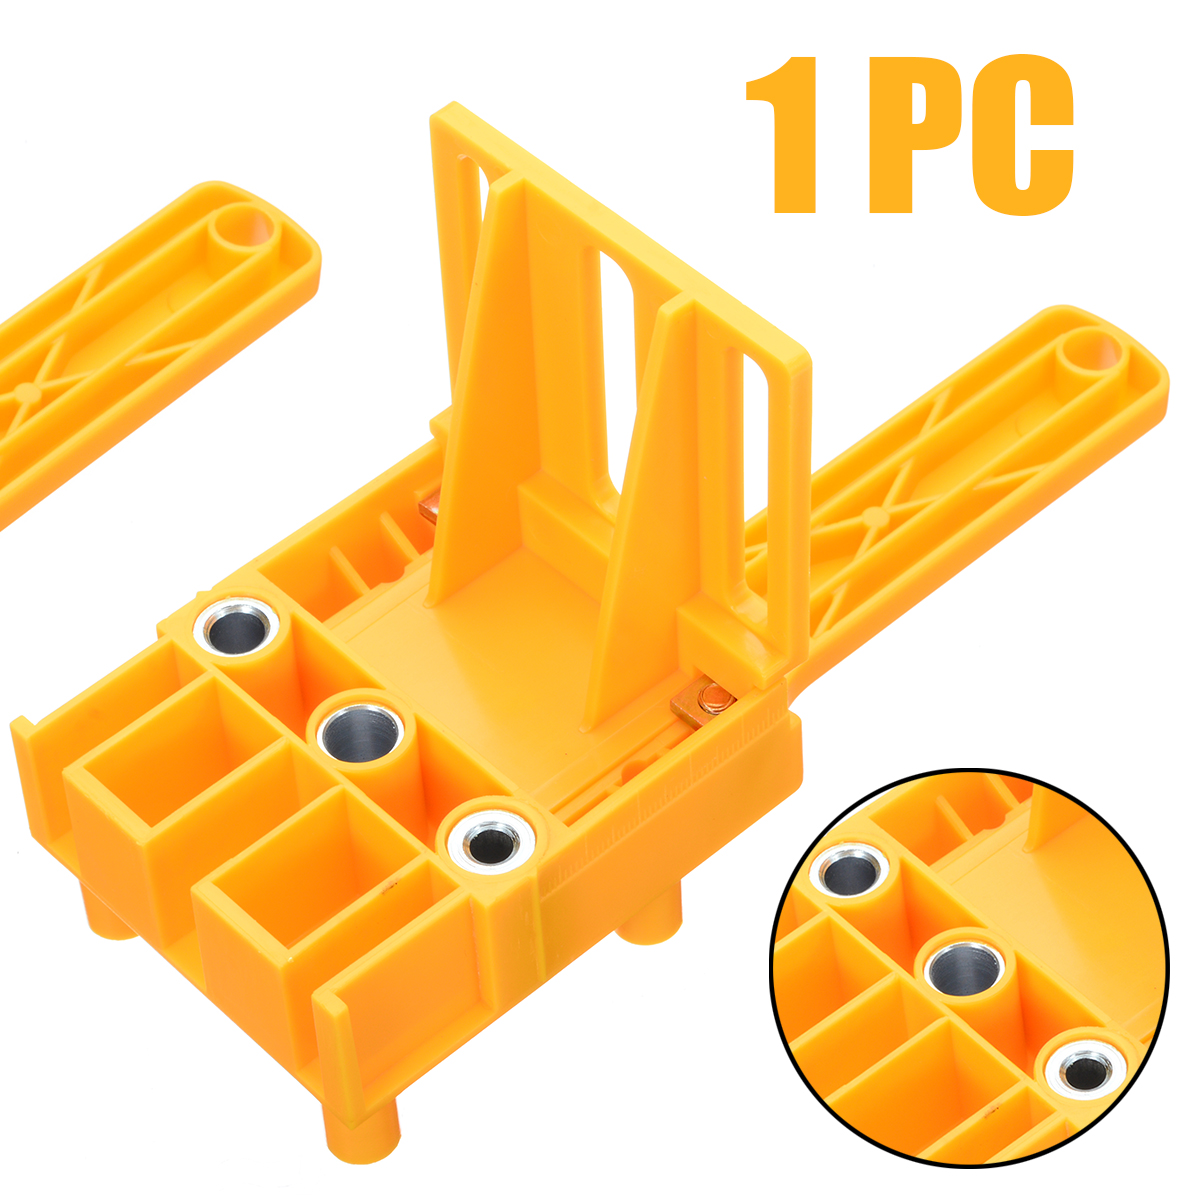 Woodworking Dowel Jig With 6 8 10mm Self-centering Wood Drilling Doweling Locator Hole Saw Tools Drill Guide For Carpenters